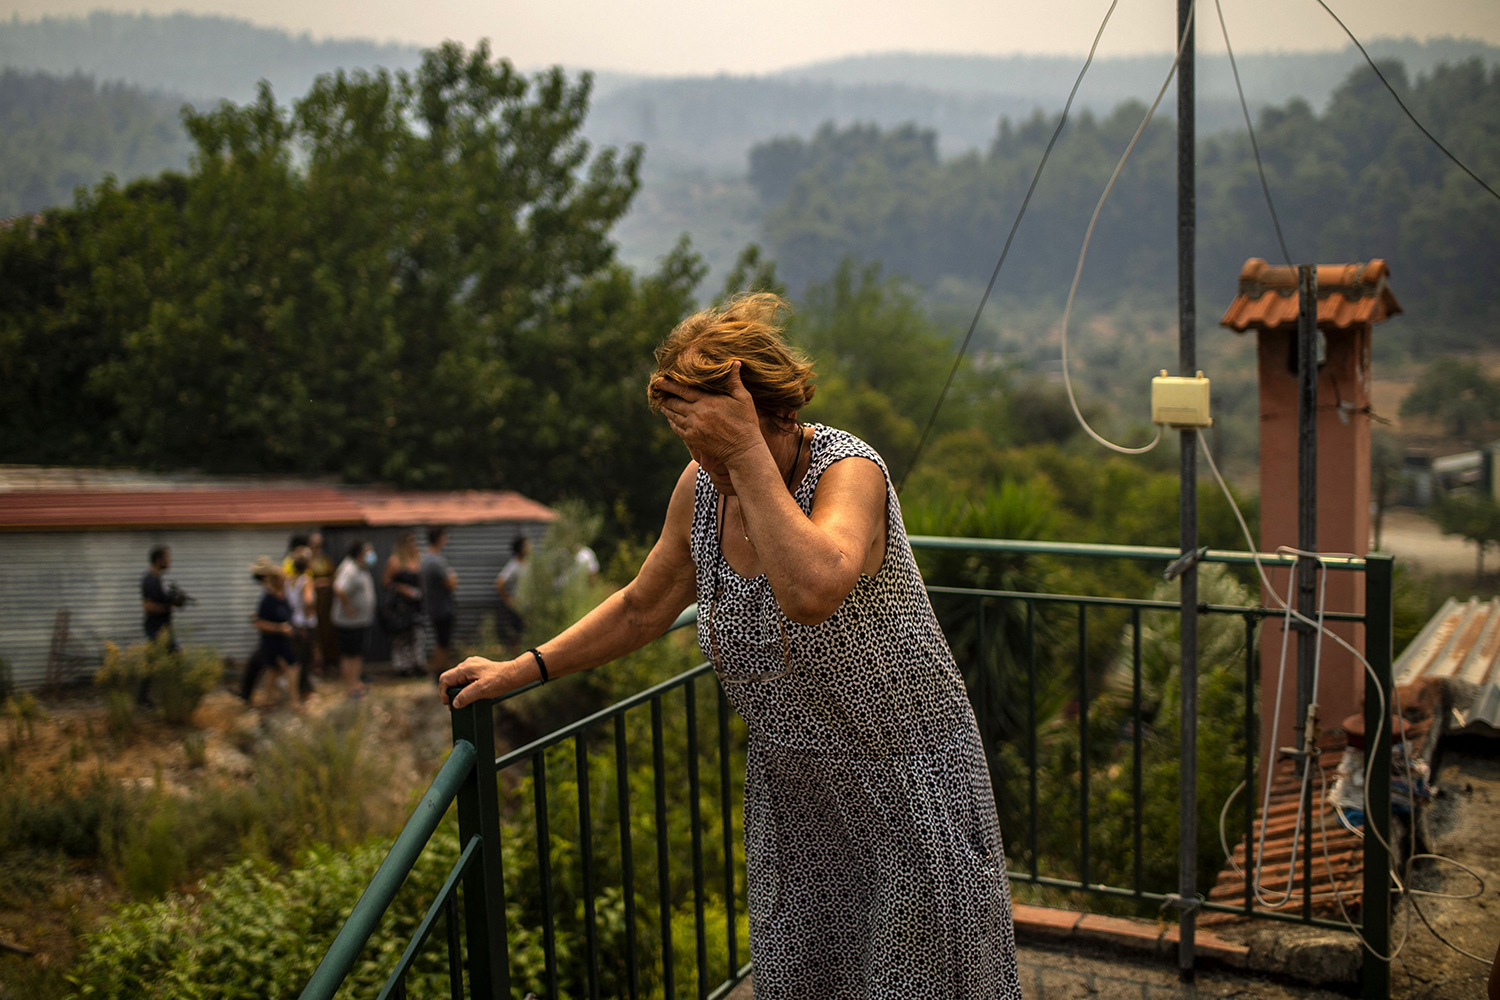 A woman reacts during a forest fire in Greece.